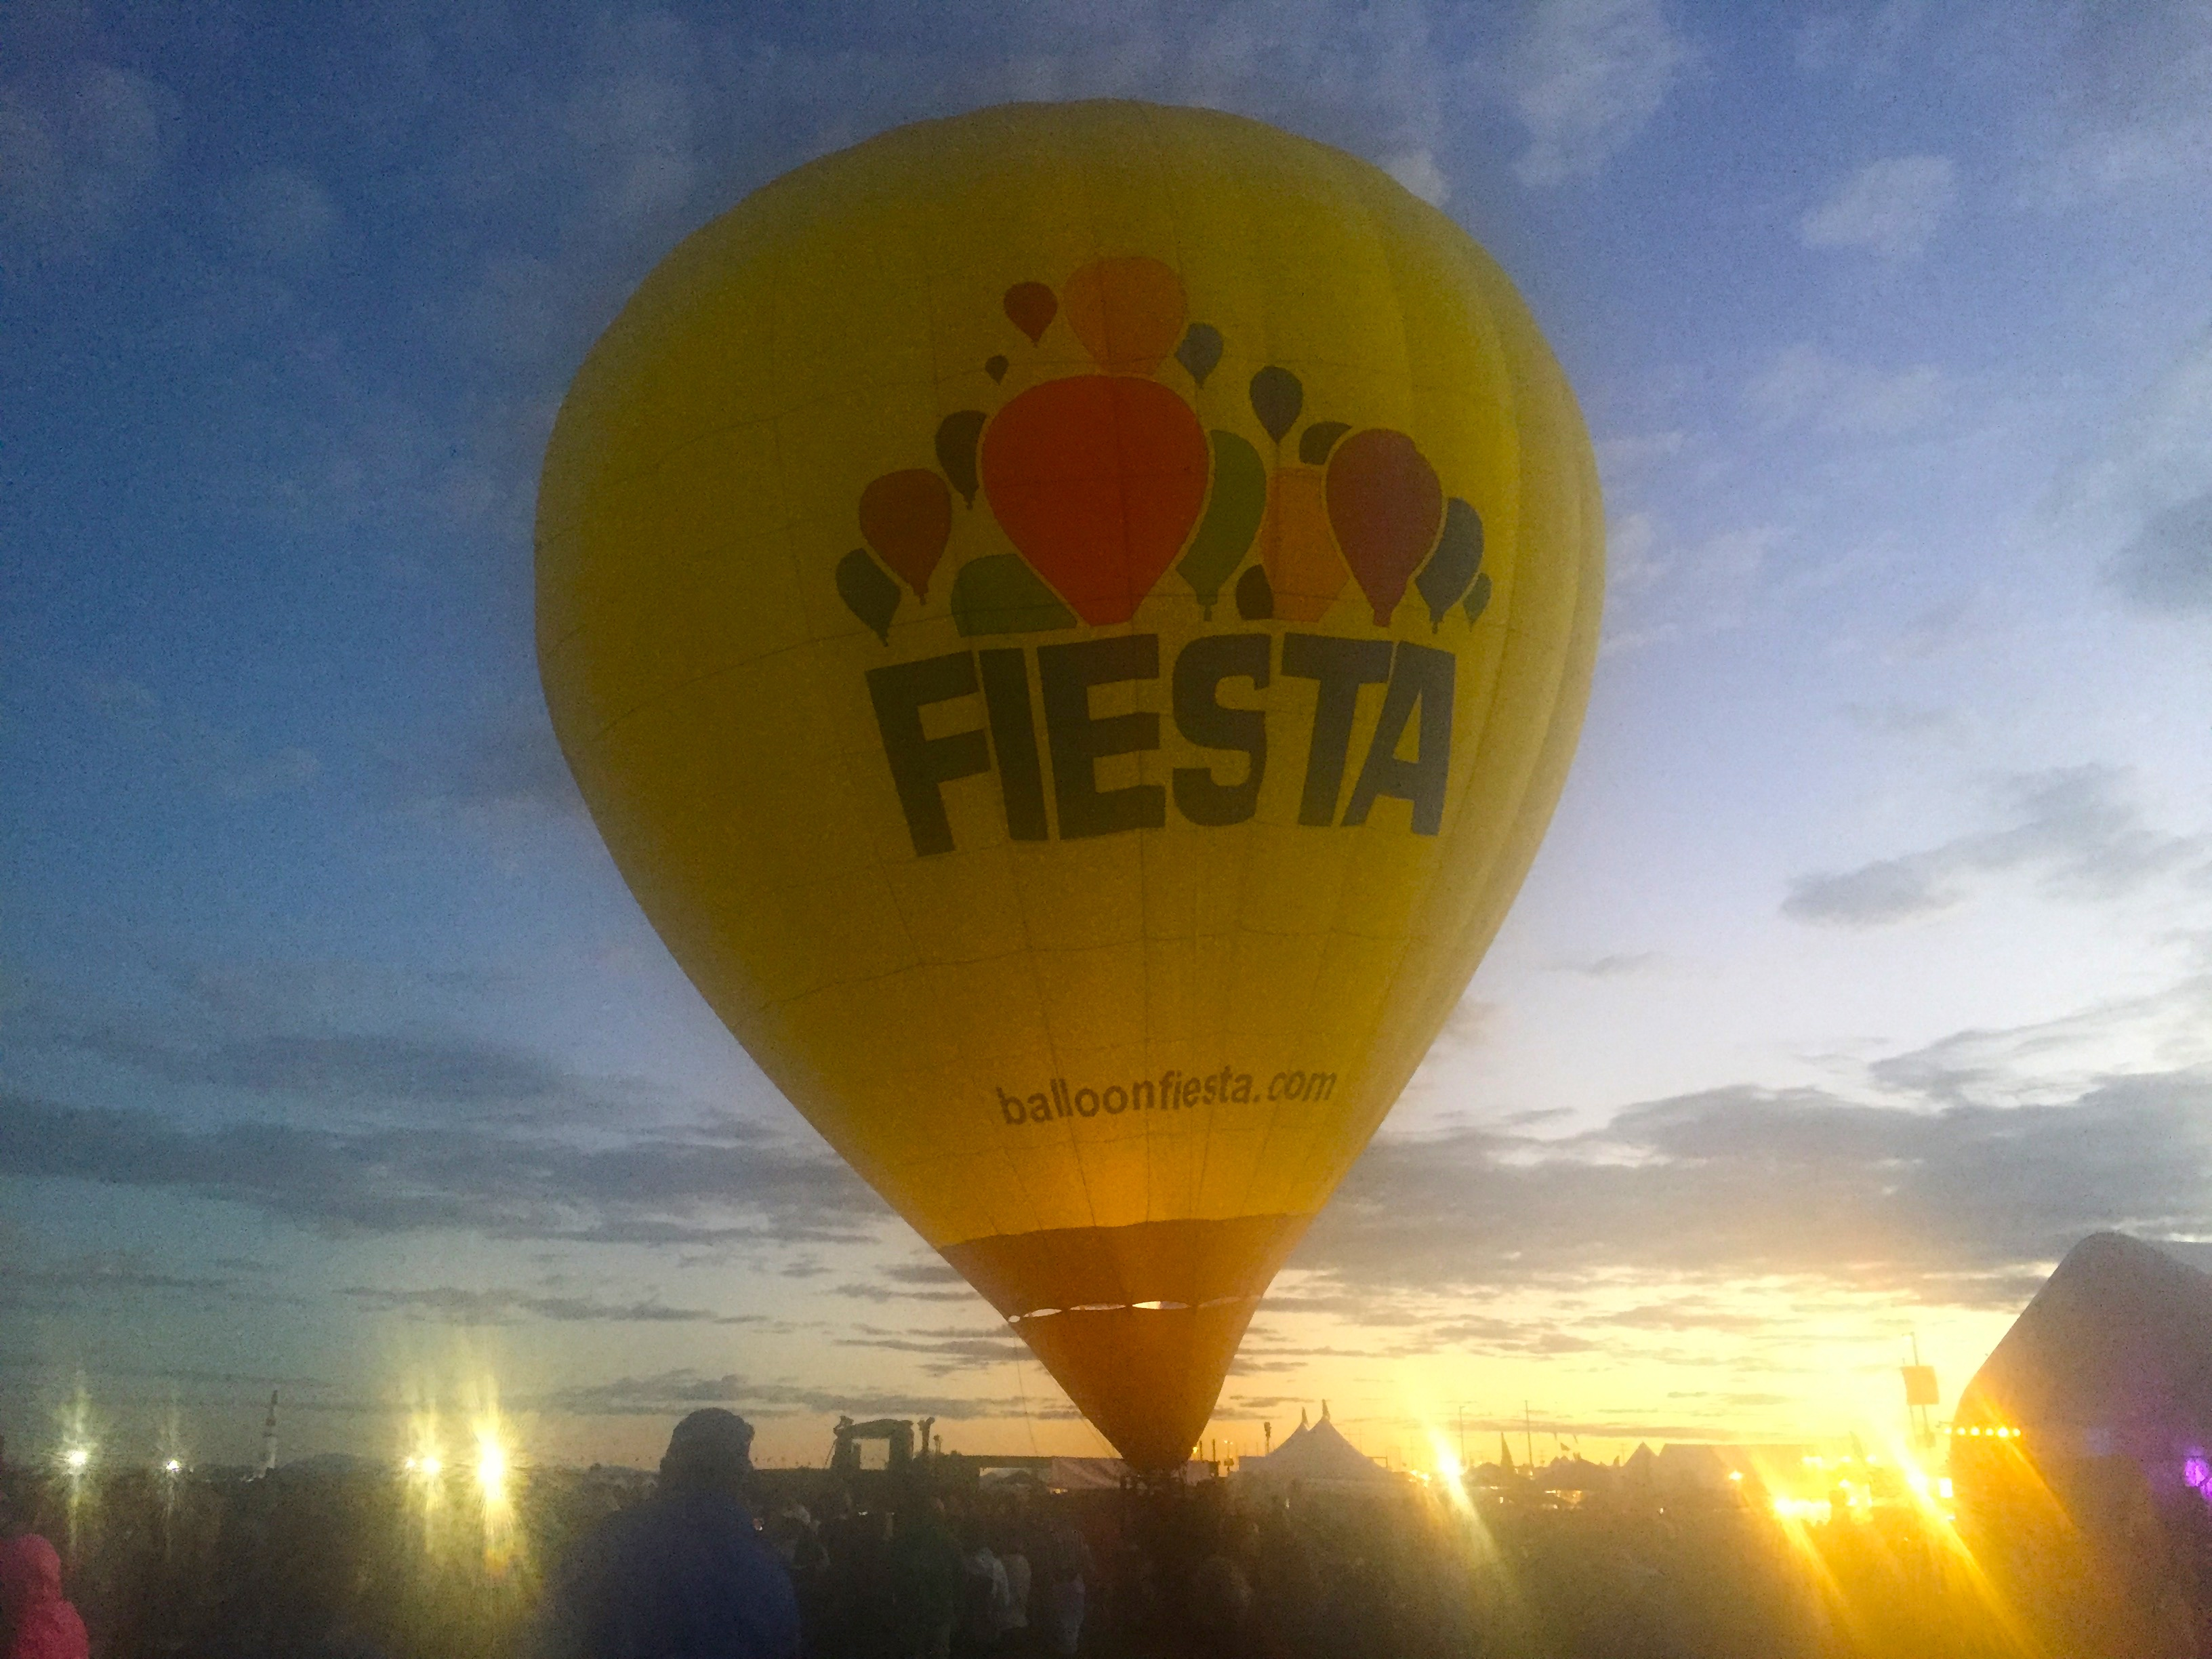 The Balloon Fiesta Balloon